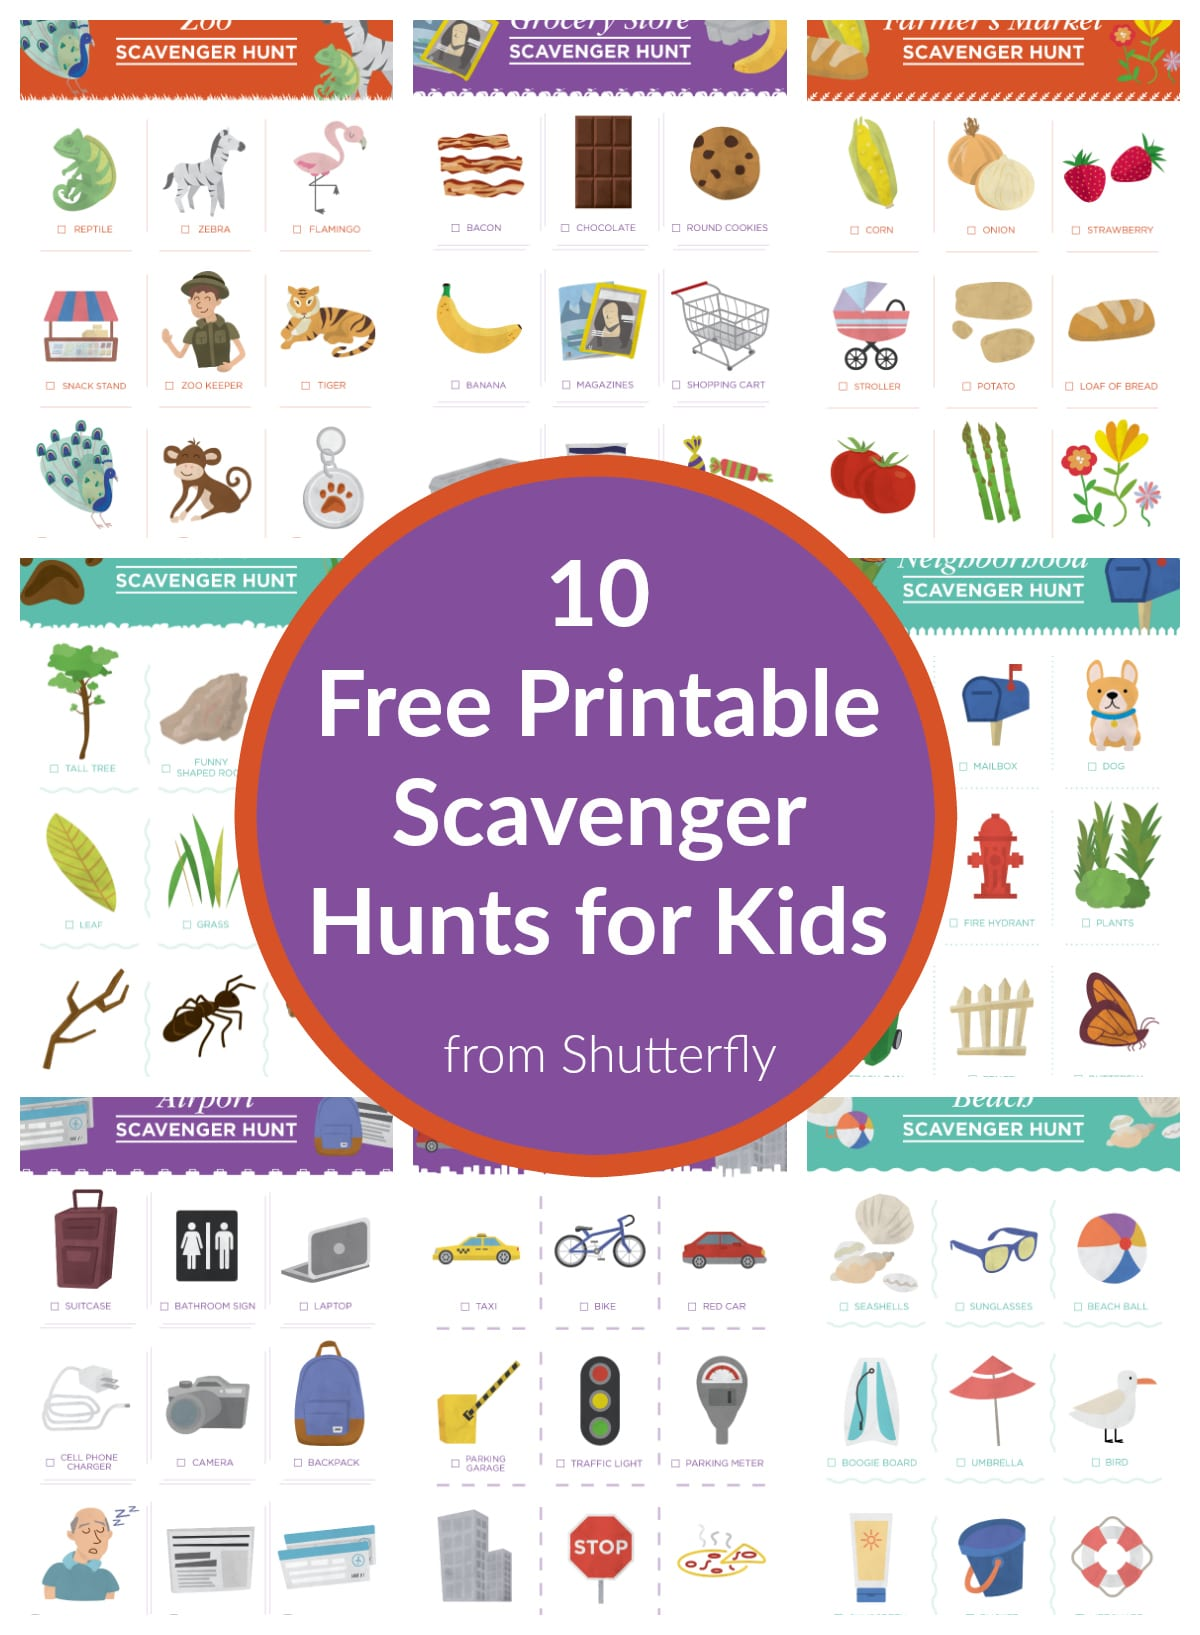 picture relating to Scavenger Hunt Printable referred to as 10 Totally free Scavenger Hunt Printables for Small children in opposition to Shutterfly